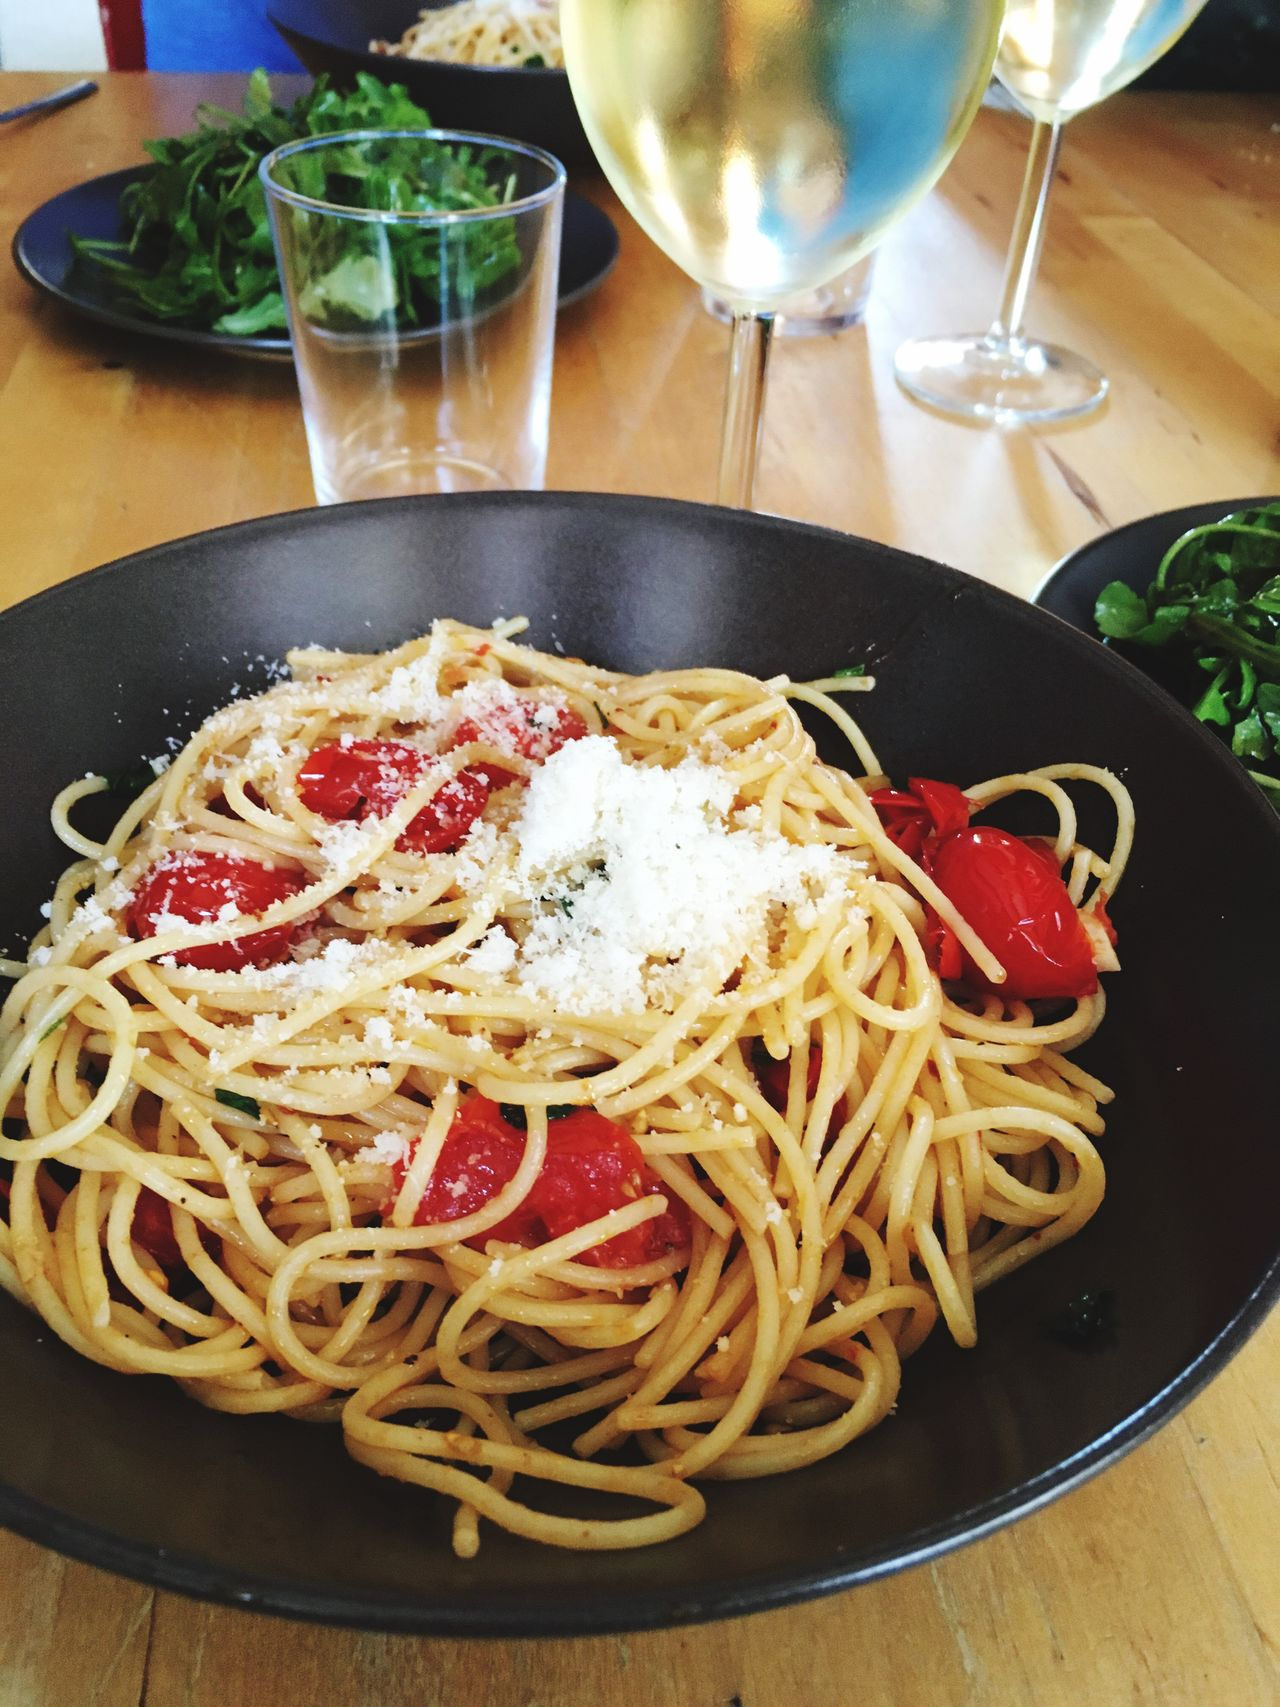 Food And Drink Food Ready-to-eat Indoors  Freshness Table Meal Serving Size Close-up Plate Indulgence Vegetable Temptation Dinner Red Garnish Lunch Appetizer Served Spaghetti Aglio Olio Spaghetti